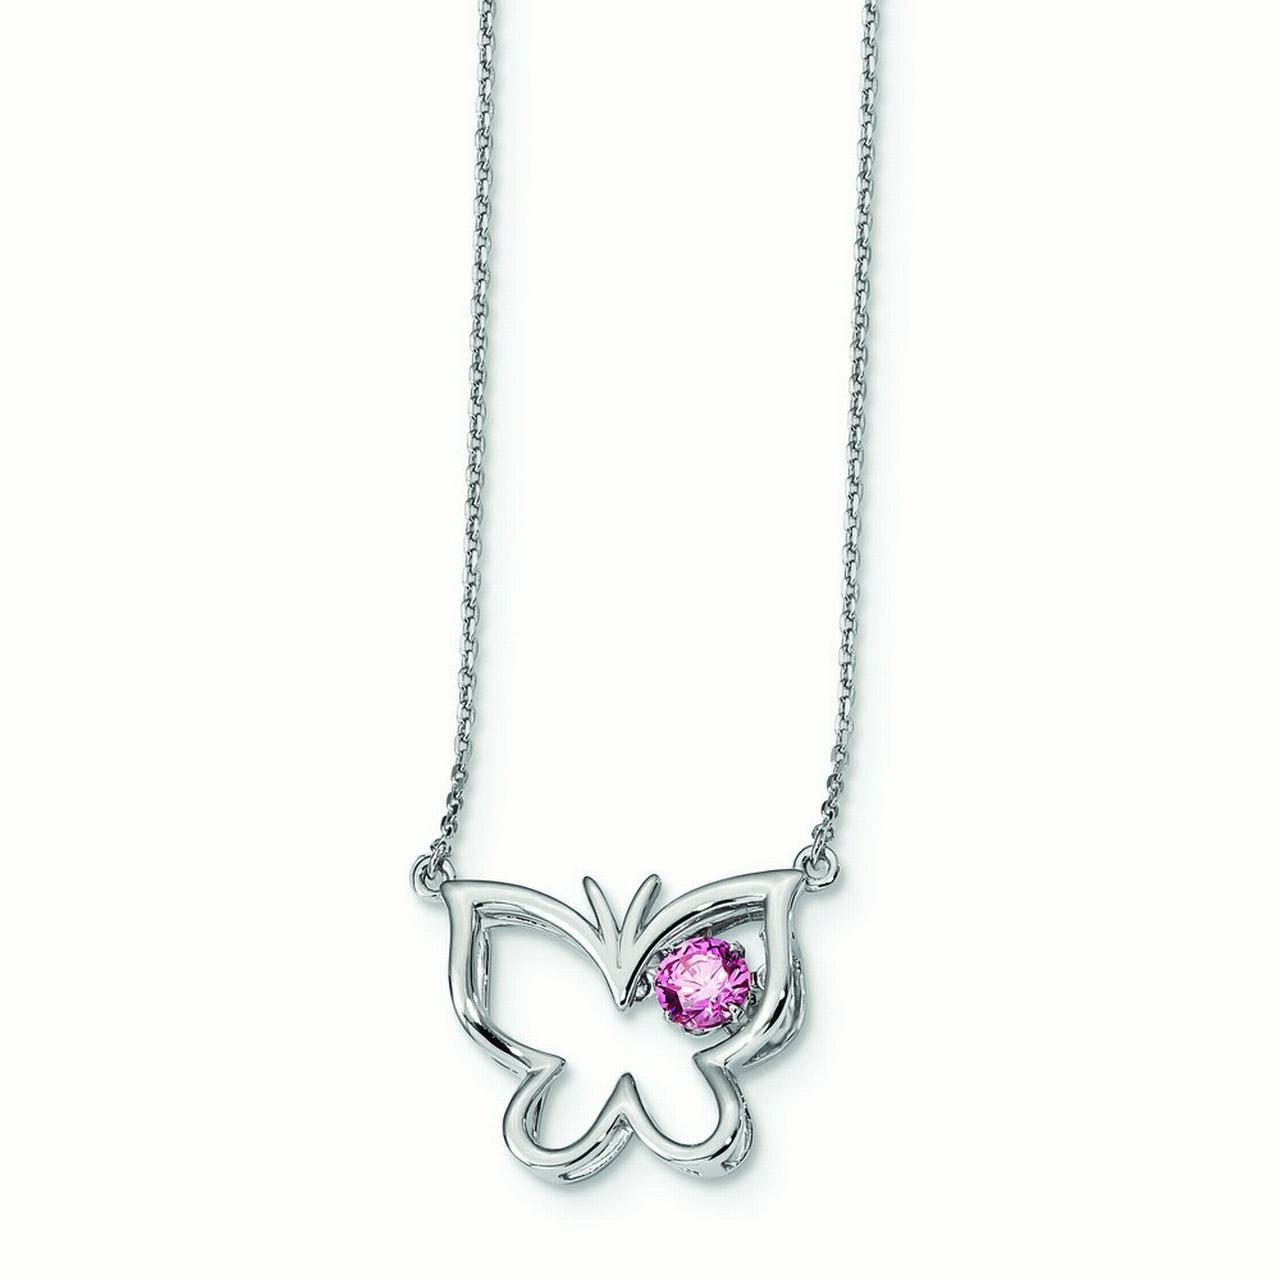 1.01mm Sterling Silver Platinum Plated Pink Vibrant Cubic Zirconia Butterfly 2inch Ext. Necklace 15.5 Inch by